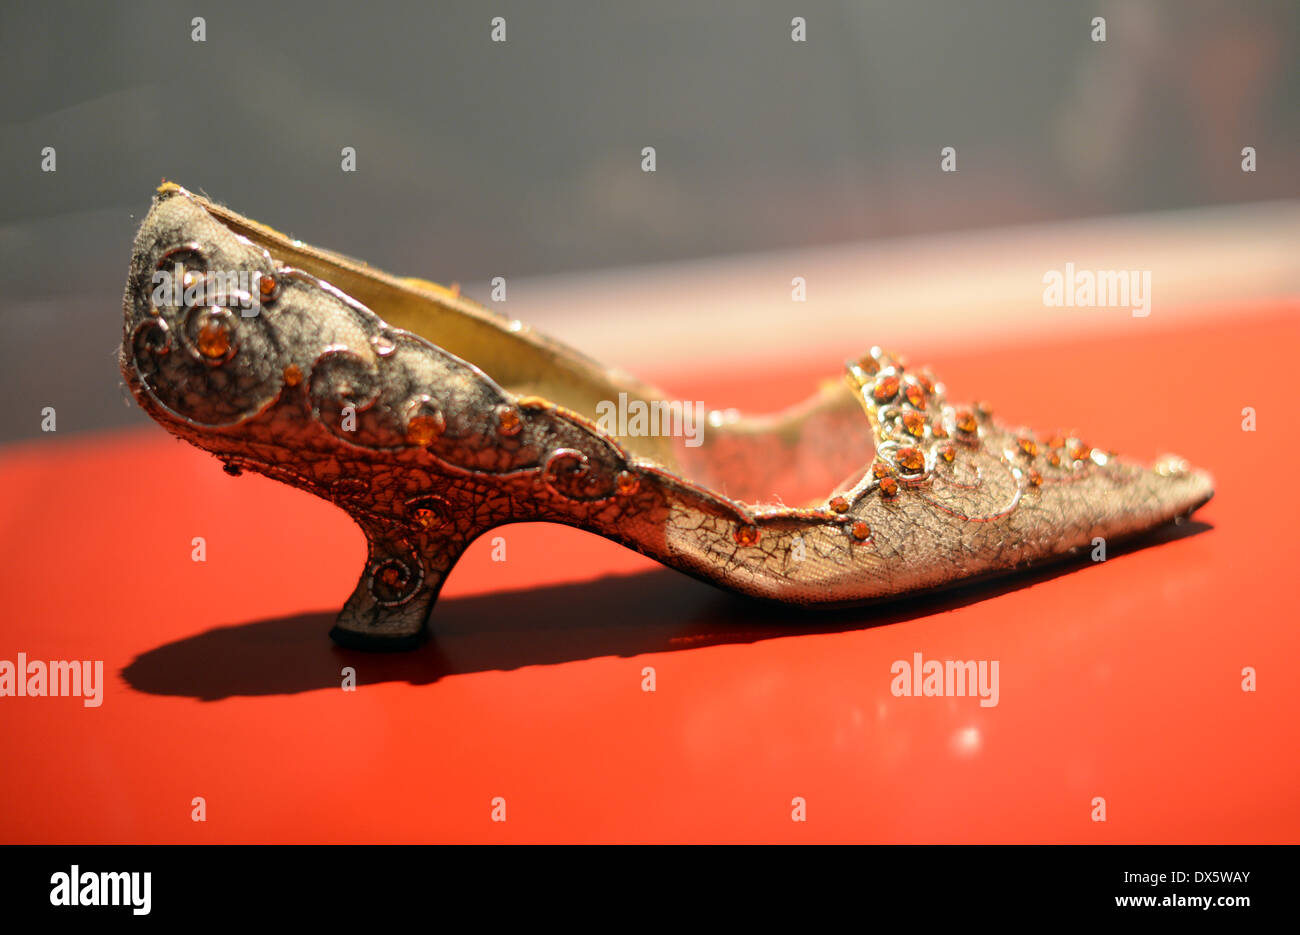 Offenbach, Germany. 18th Mar, 2014. A shoe of Persian princess Soraya (Soraya Esfandiary Bakhtiary) is displayed in the exhibition 'Roger Vivier: SchuhWERKE' in the International Leather Museum in Offenbach, Germany, 18 March 2014. Shoes of designer Roger Vivier, the inventor of the stiletto heel, are exhibited in Offenbach from 22 March to 02 November 2014. Photo: Daniel Reinhardt/dpa/Alamy Live News - Stock Image